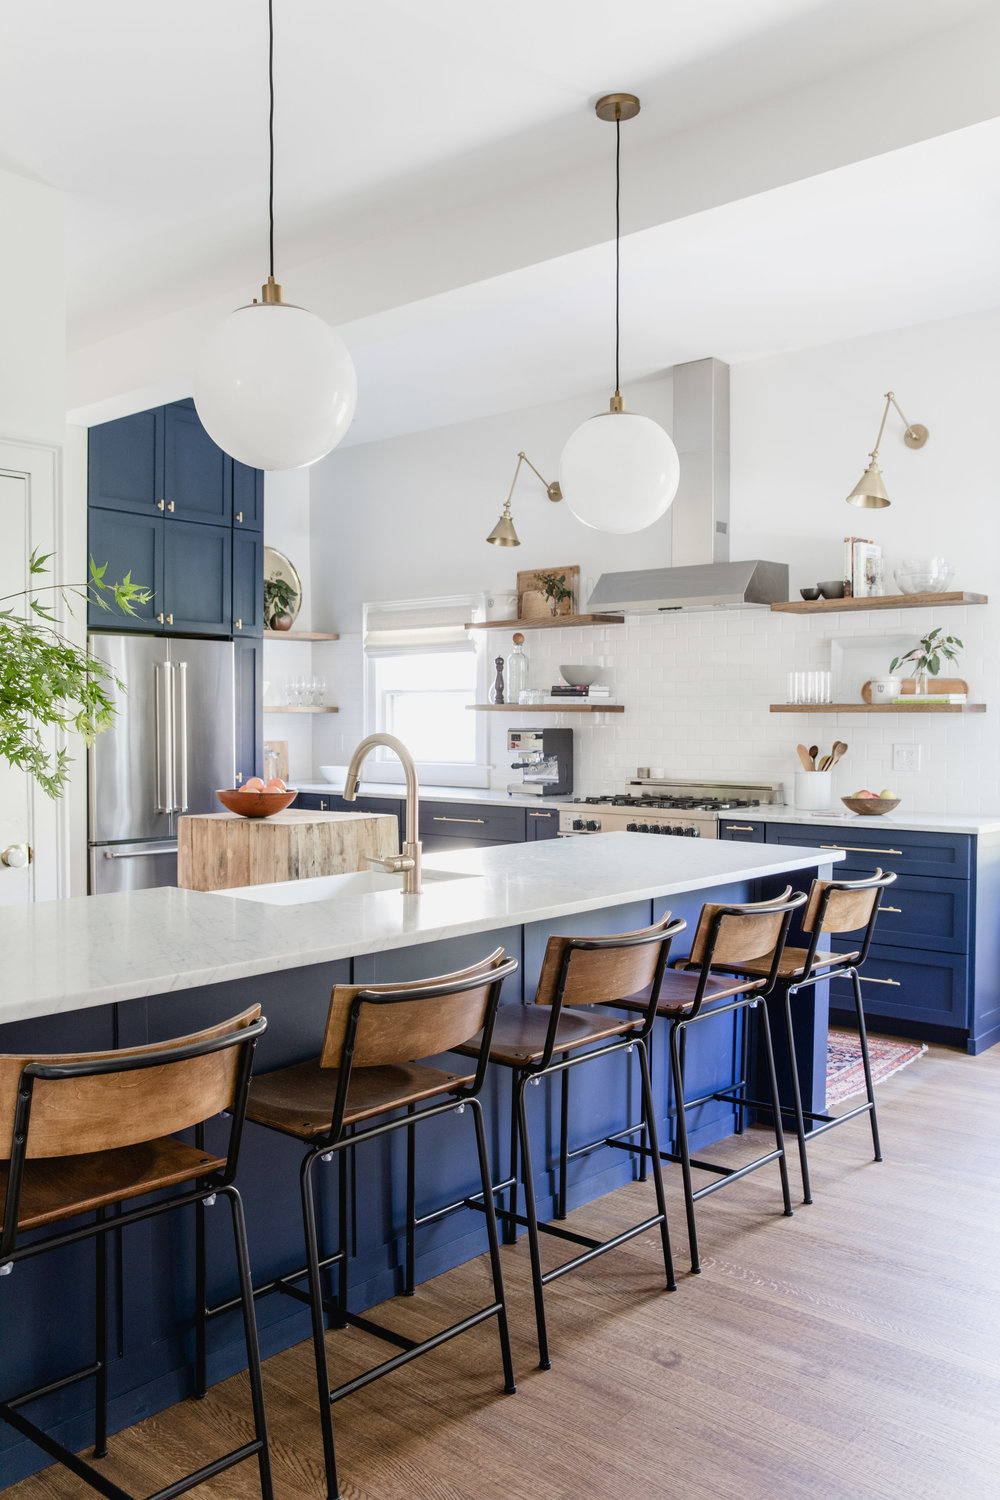 island kitchen stools how to choose the right bar stools for your kitchen island or peninsula mix match design company 4553